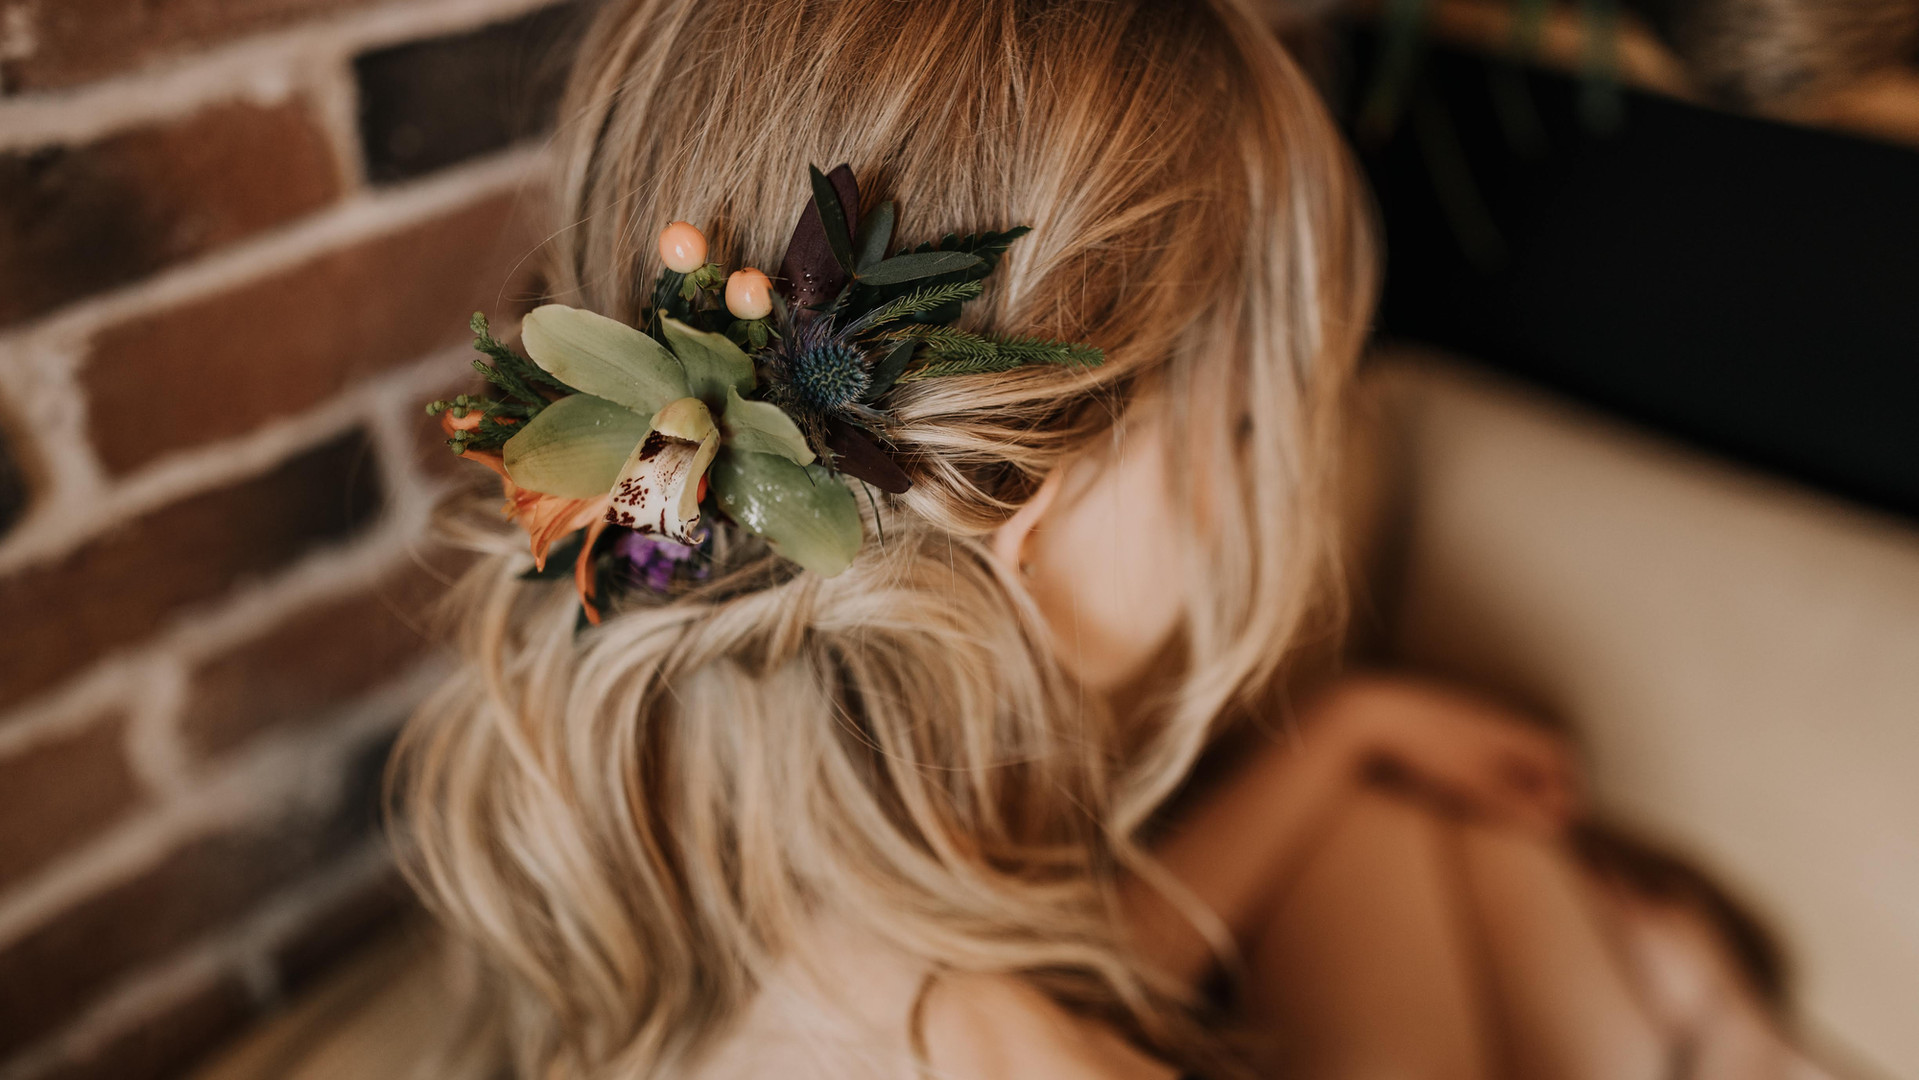 Flowers in my hair, don't care.